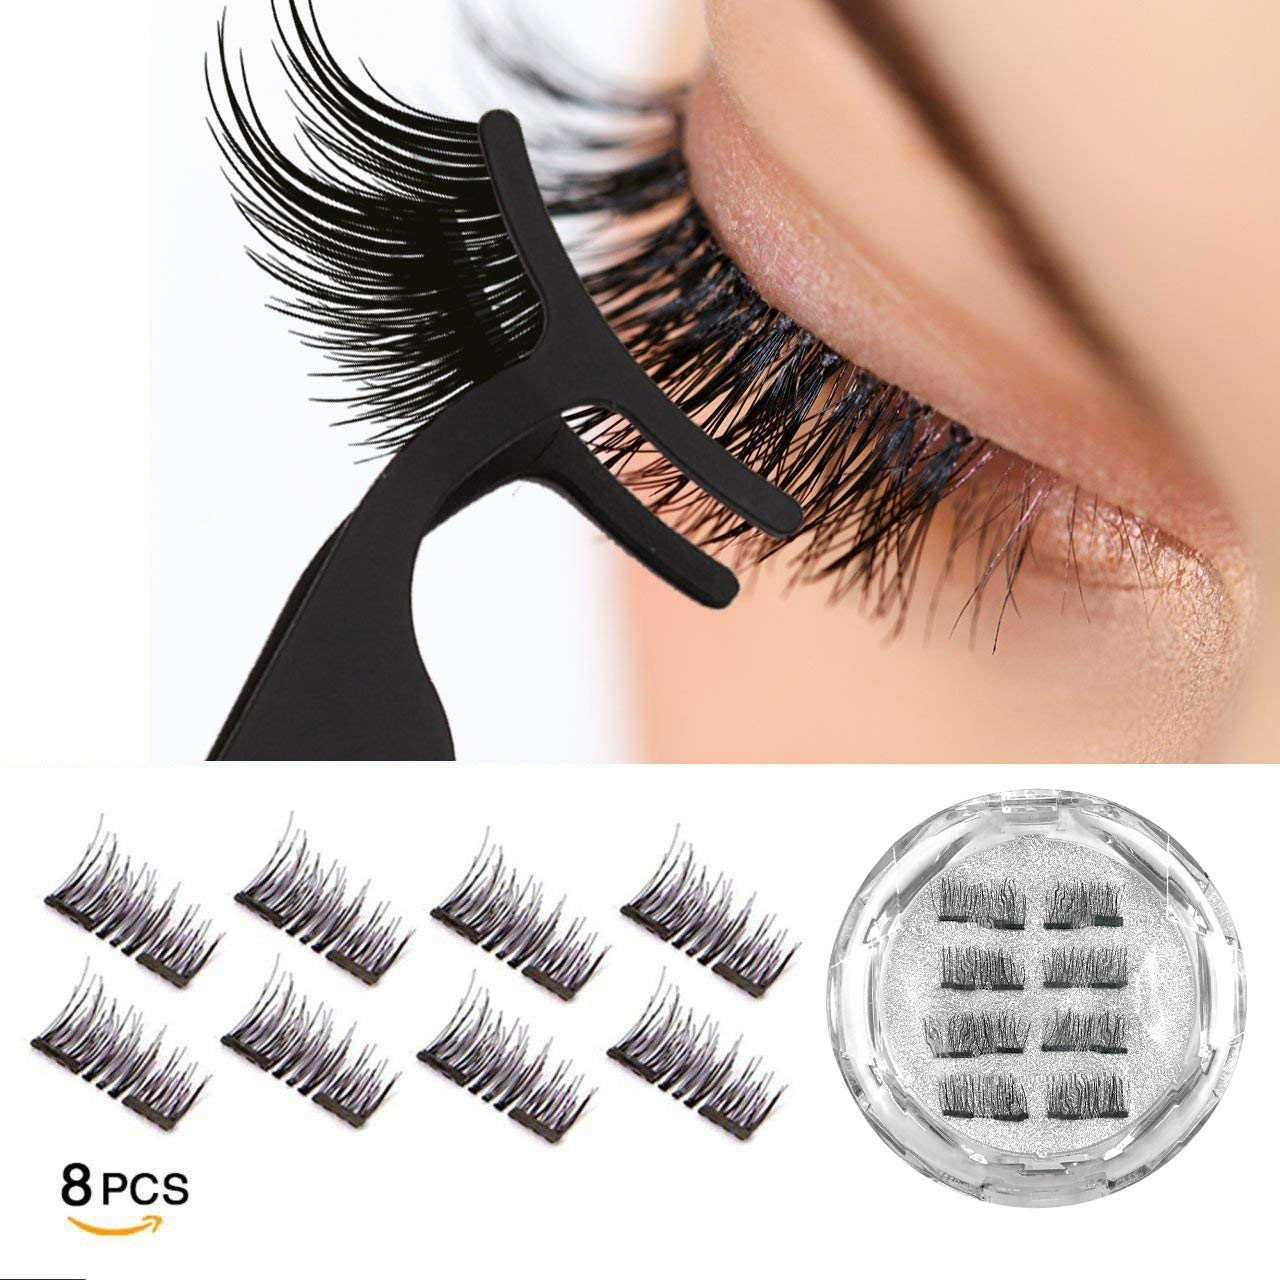 Dual Magnetic Eyelashes 0.2mm Ultra Thin Magnet Lightweight & Easy to Wear Best 3D Reusable Eyelashes Extensions With Applicator (8 PC)